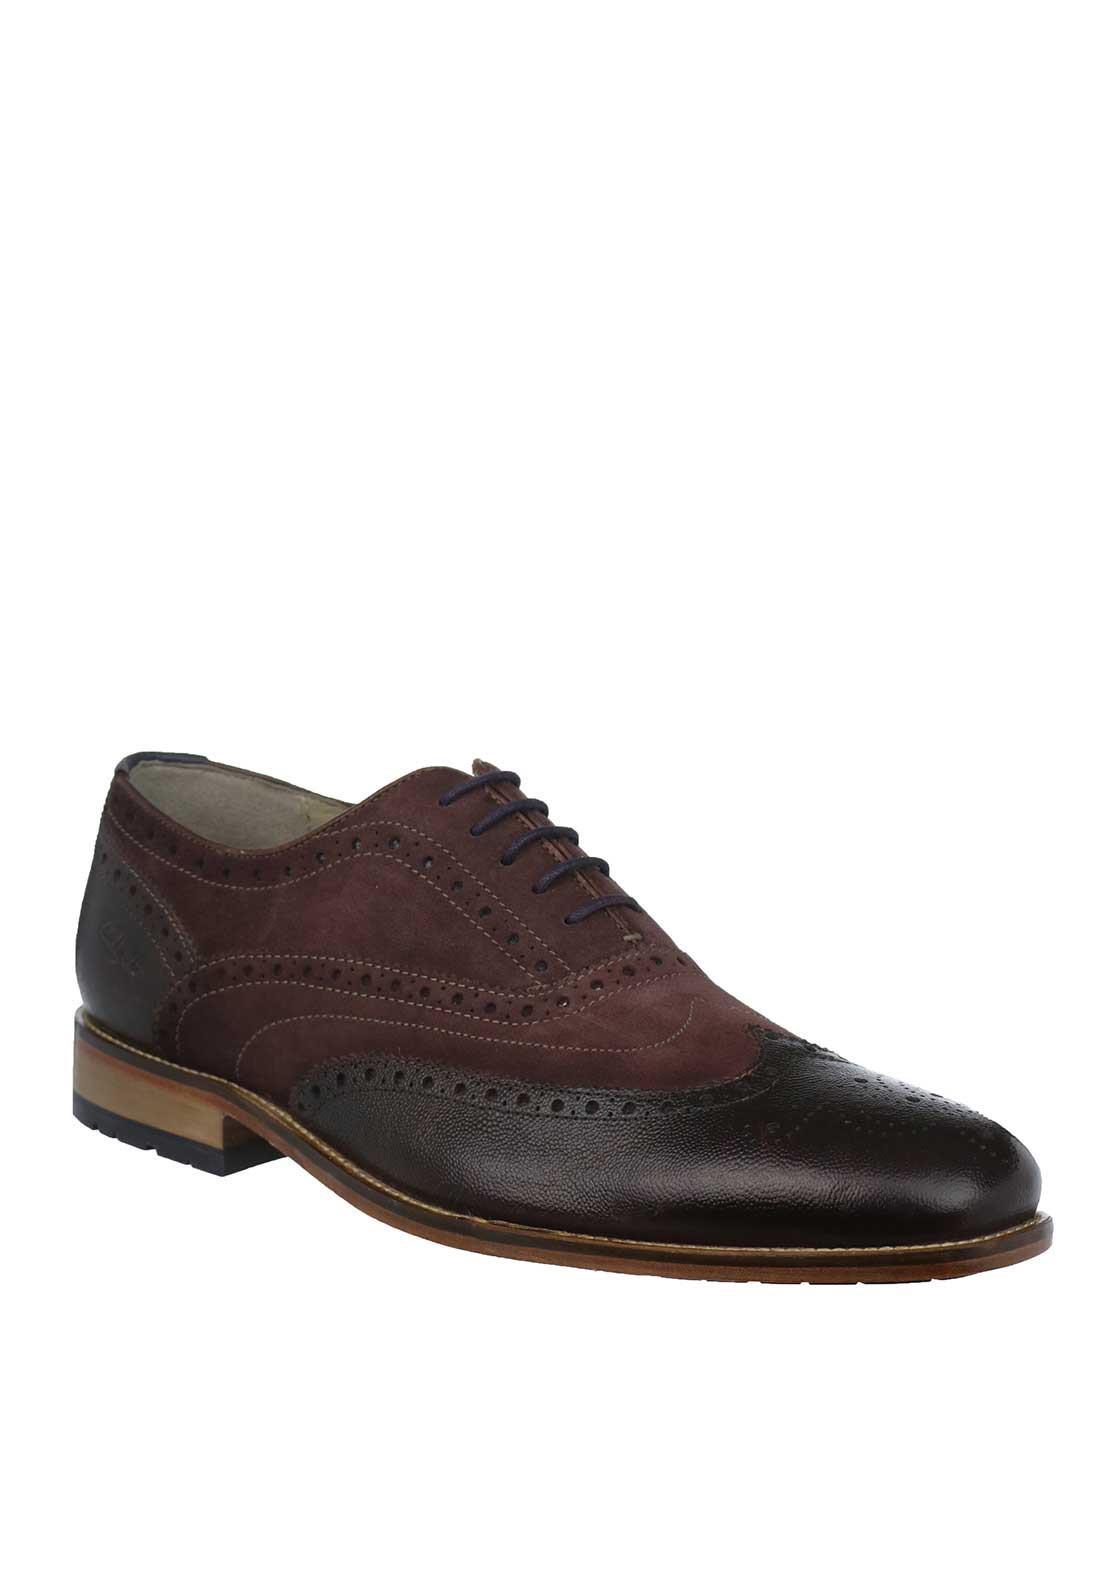 Clarks Mens Penton Limit Brogue Shoes, Wine